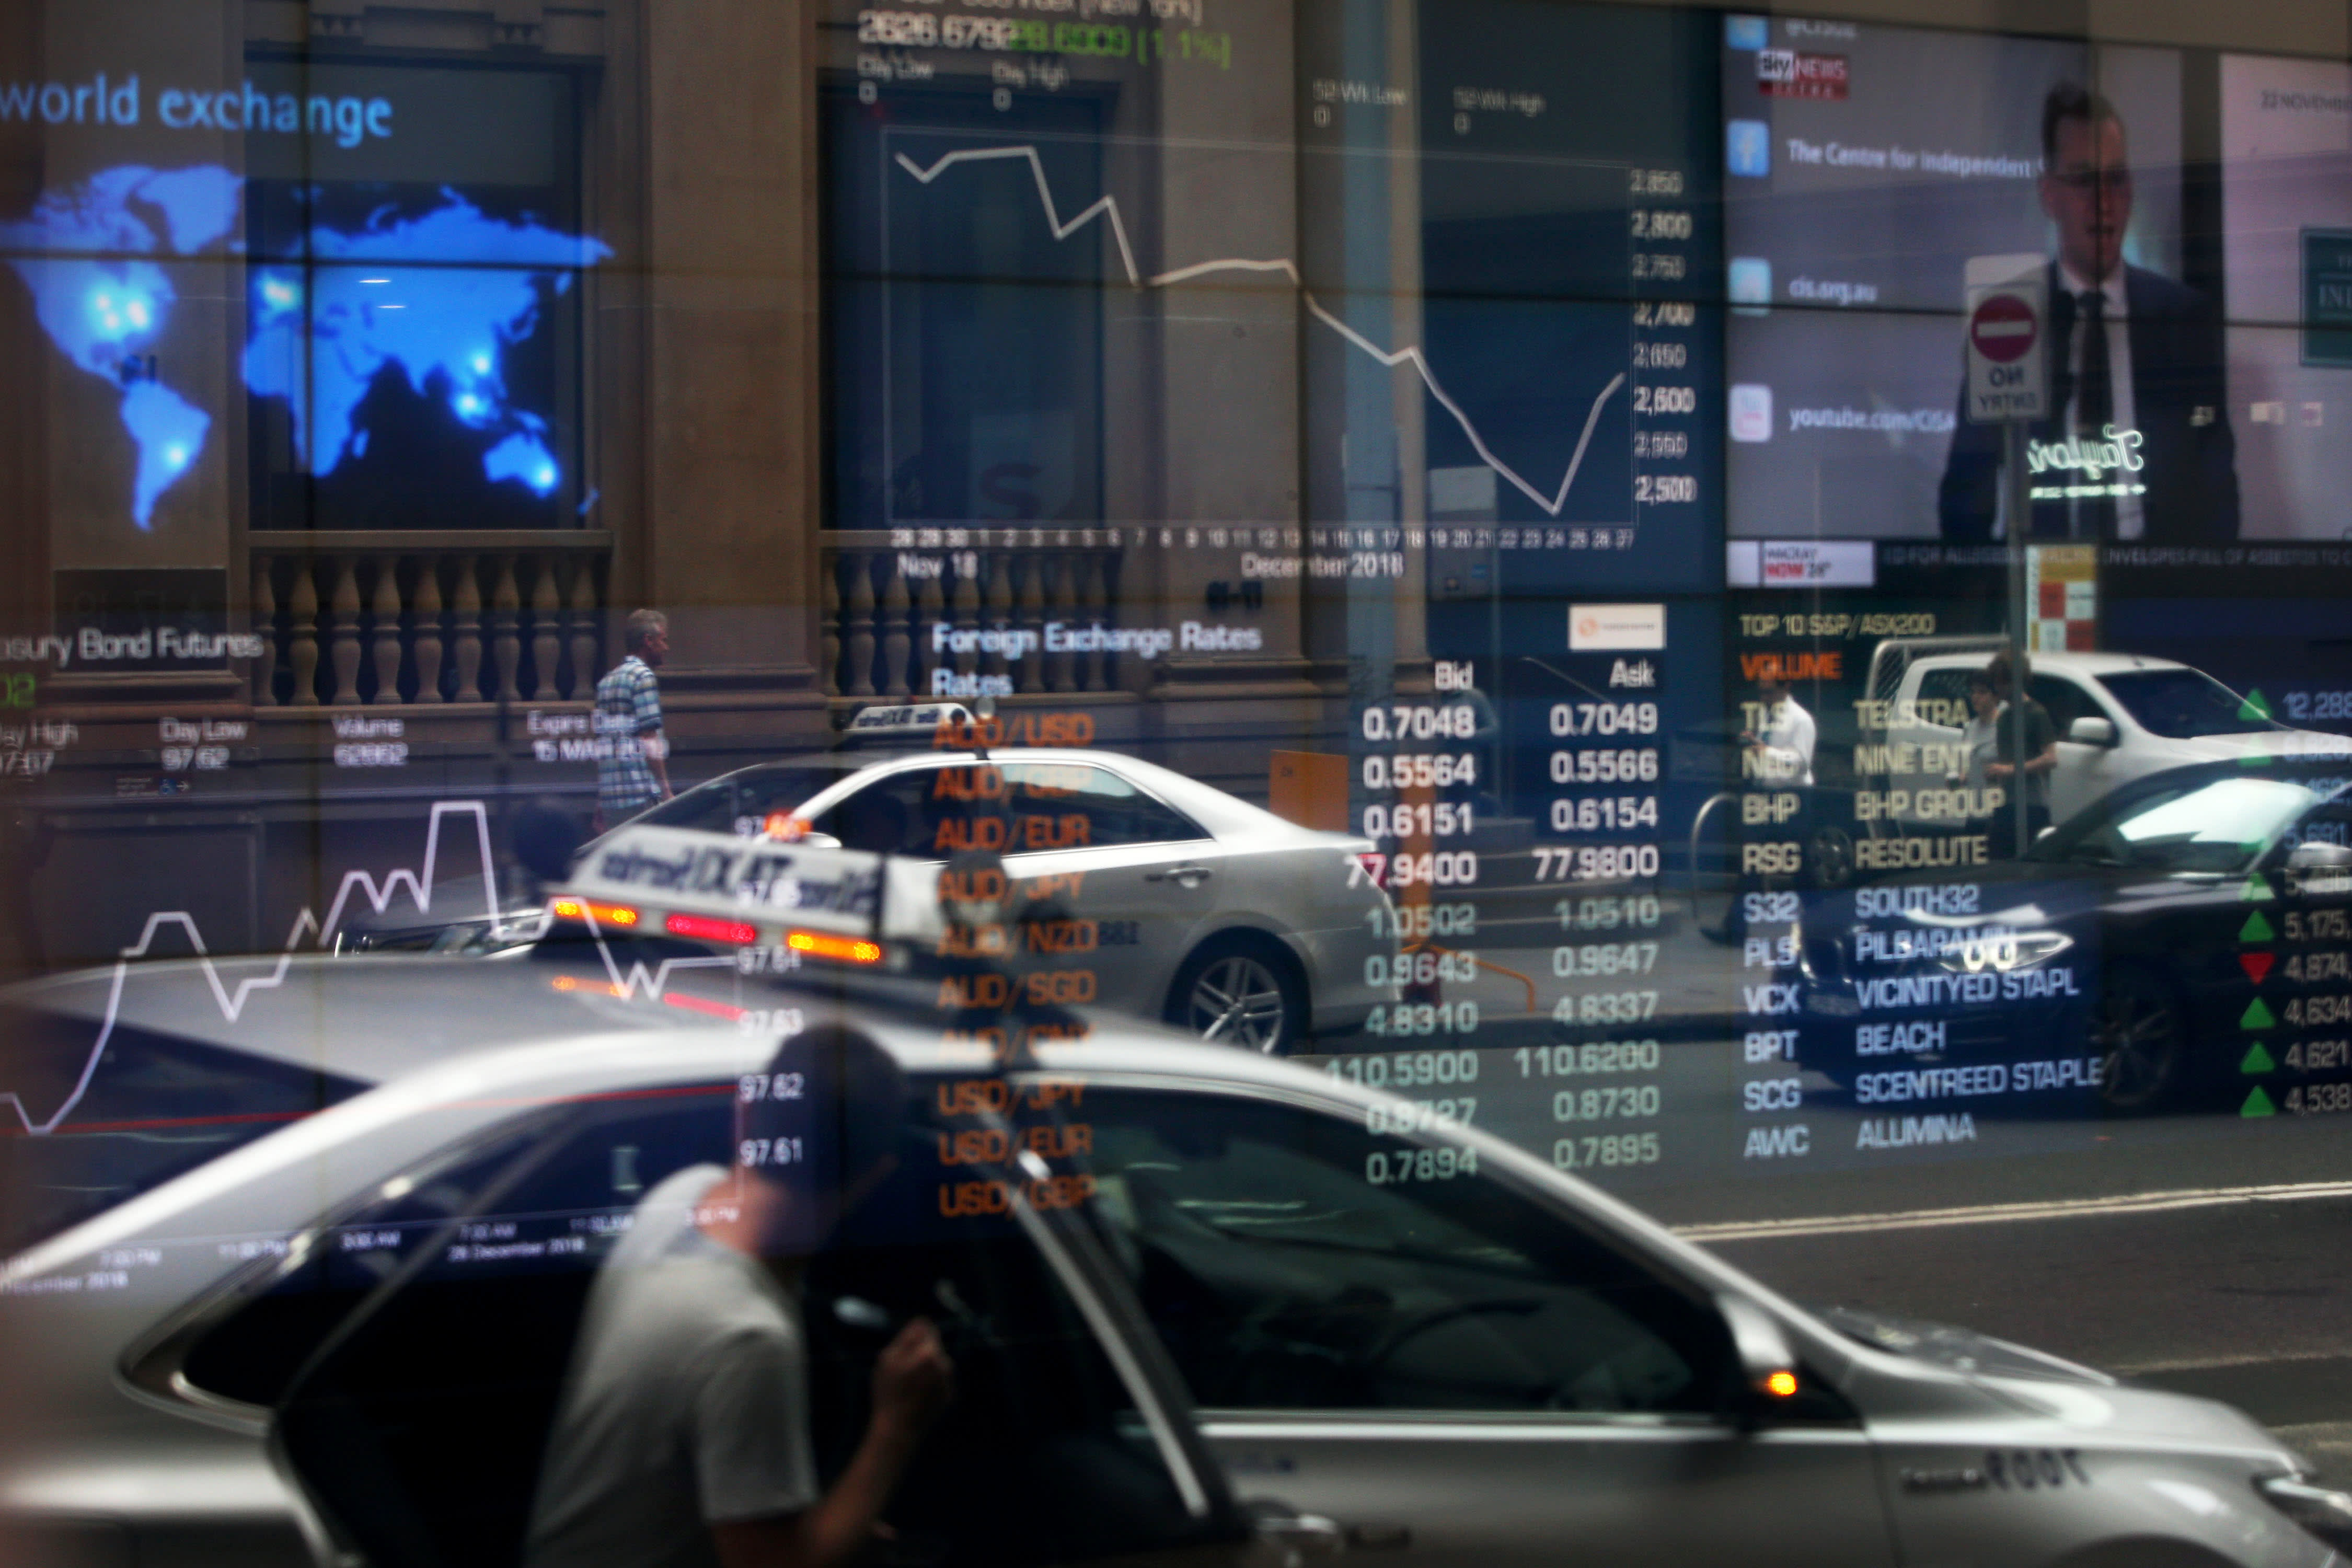 Asia Pacific markets advance following overnight gains on Wall Street